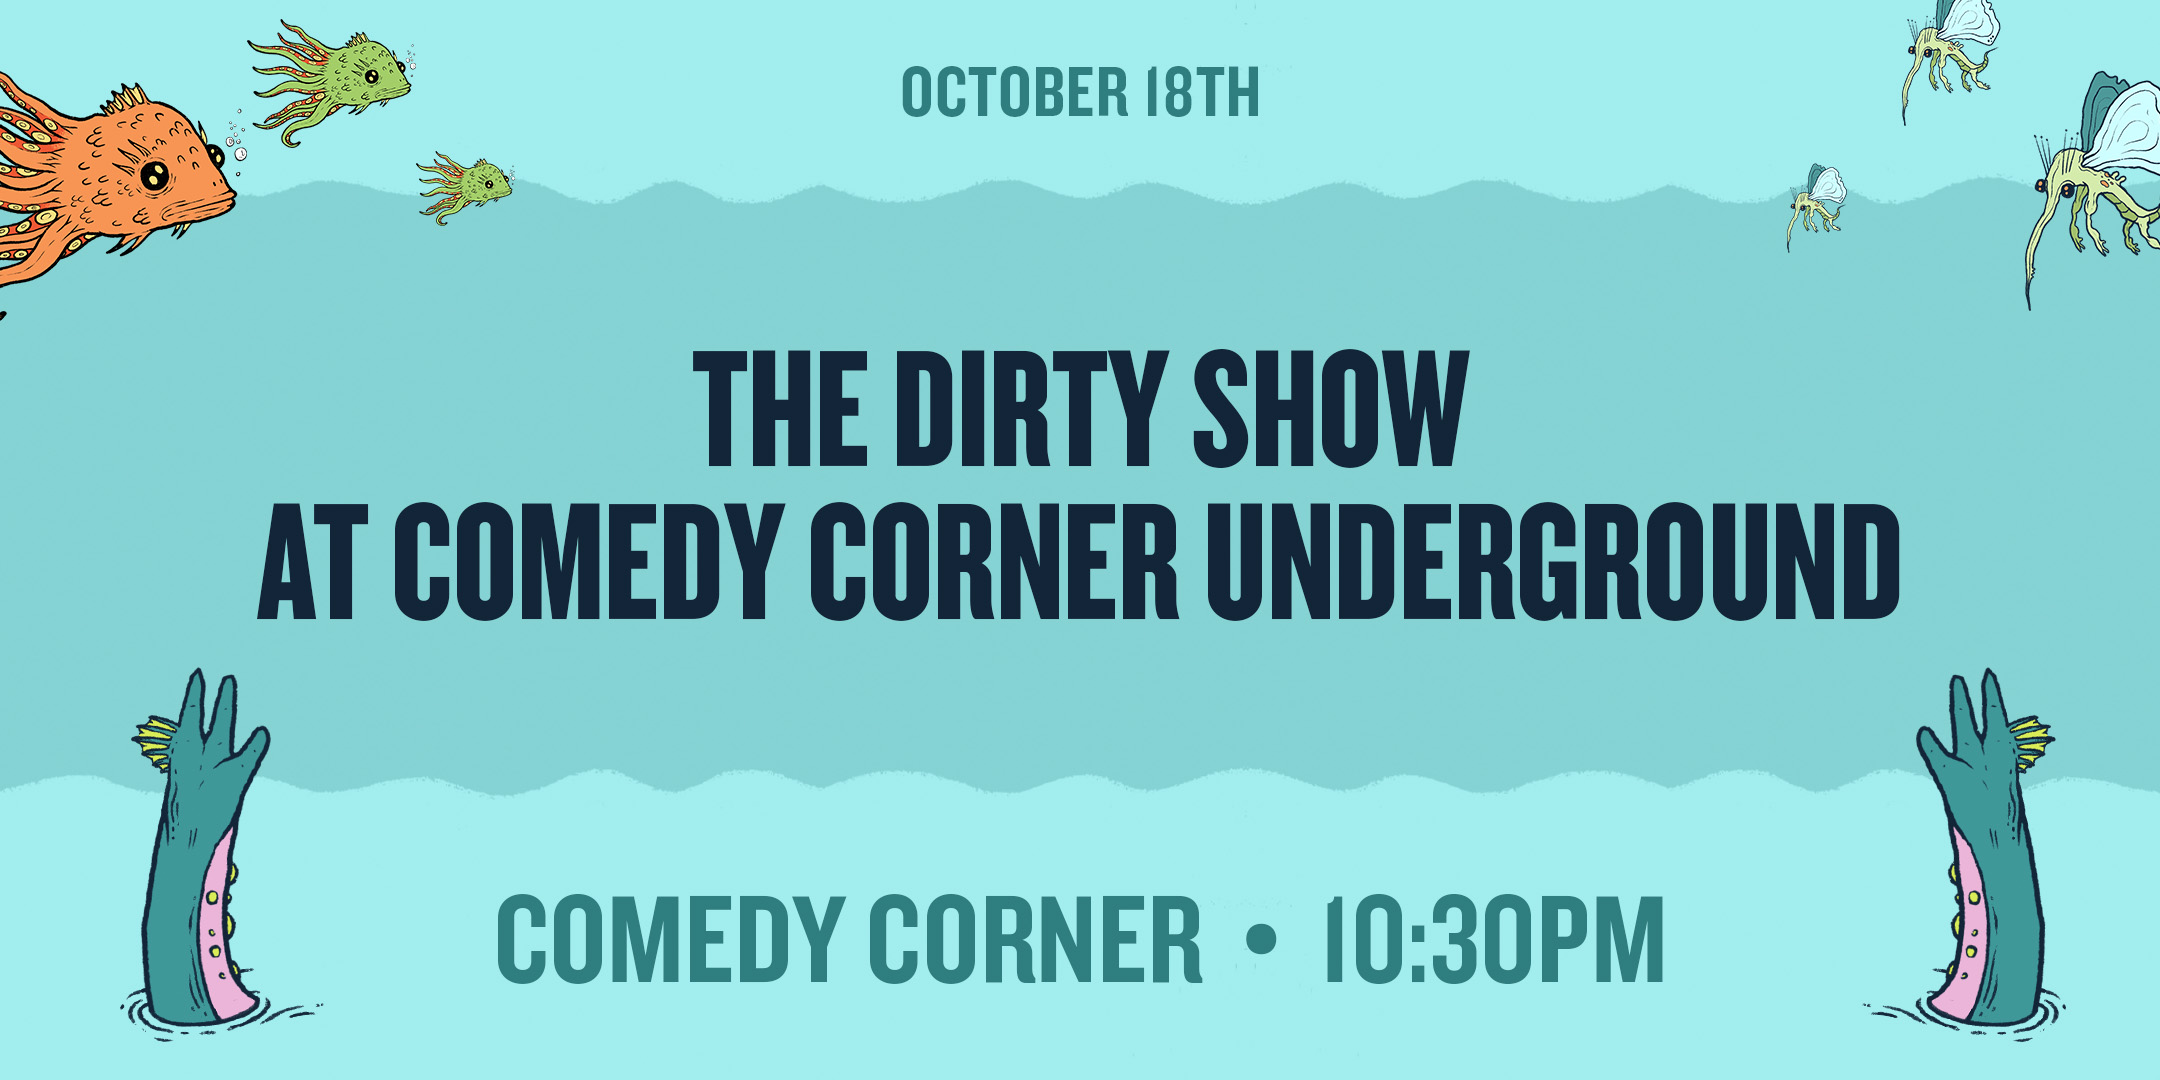 OCT18-Dirty Show at CCU.jpg